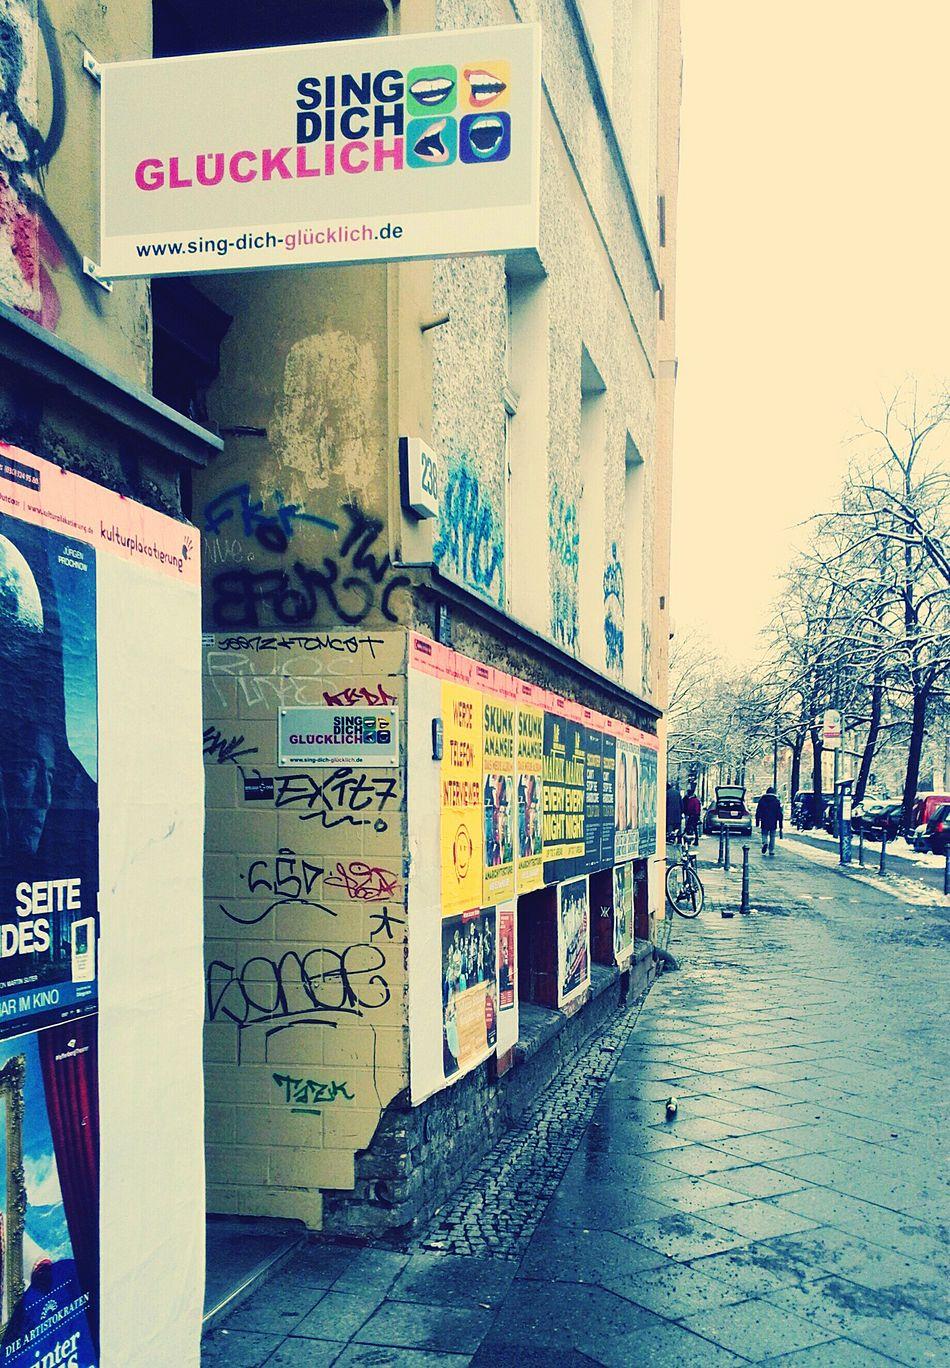 Relaxing Taking Photos Happy Enjoying Life Hanging Out Quality Time What I Value Walking Around Prenzlauerberg Streetphotography PicofthedaySinging Hobby Love Is In The Air Streetart Urban Berliner Ansichten Sunday Architecture Building Wohnglück Graffiti City Check This Out Winter